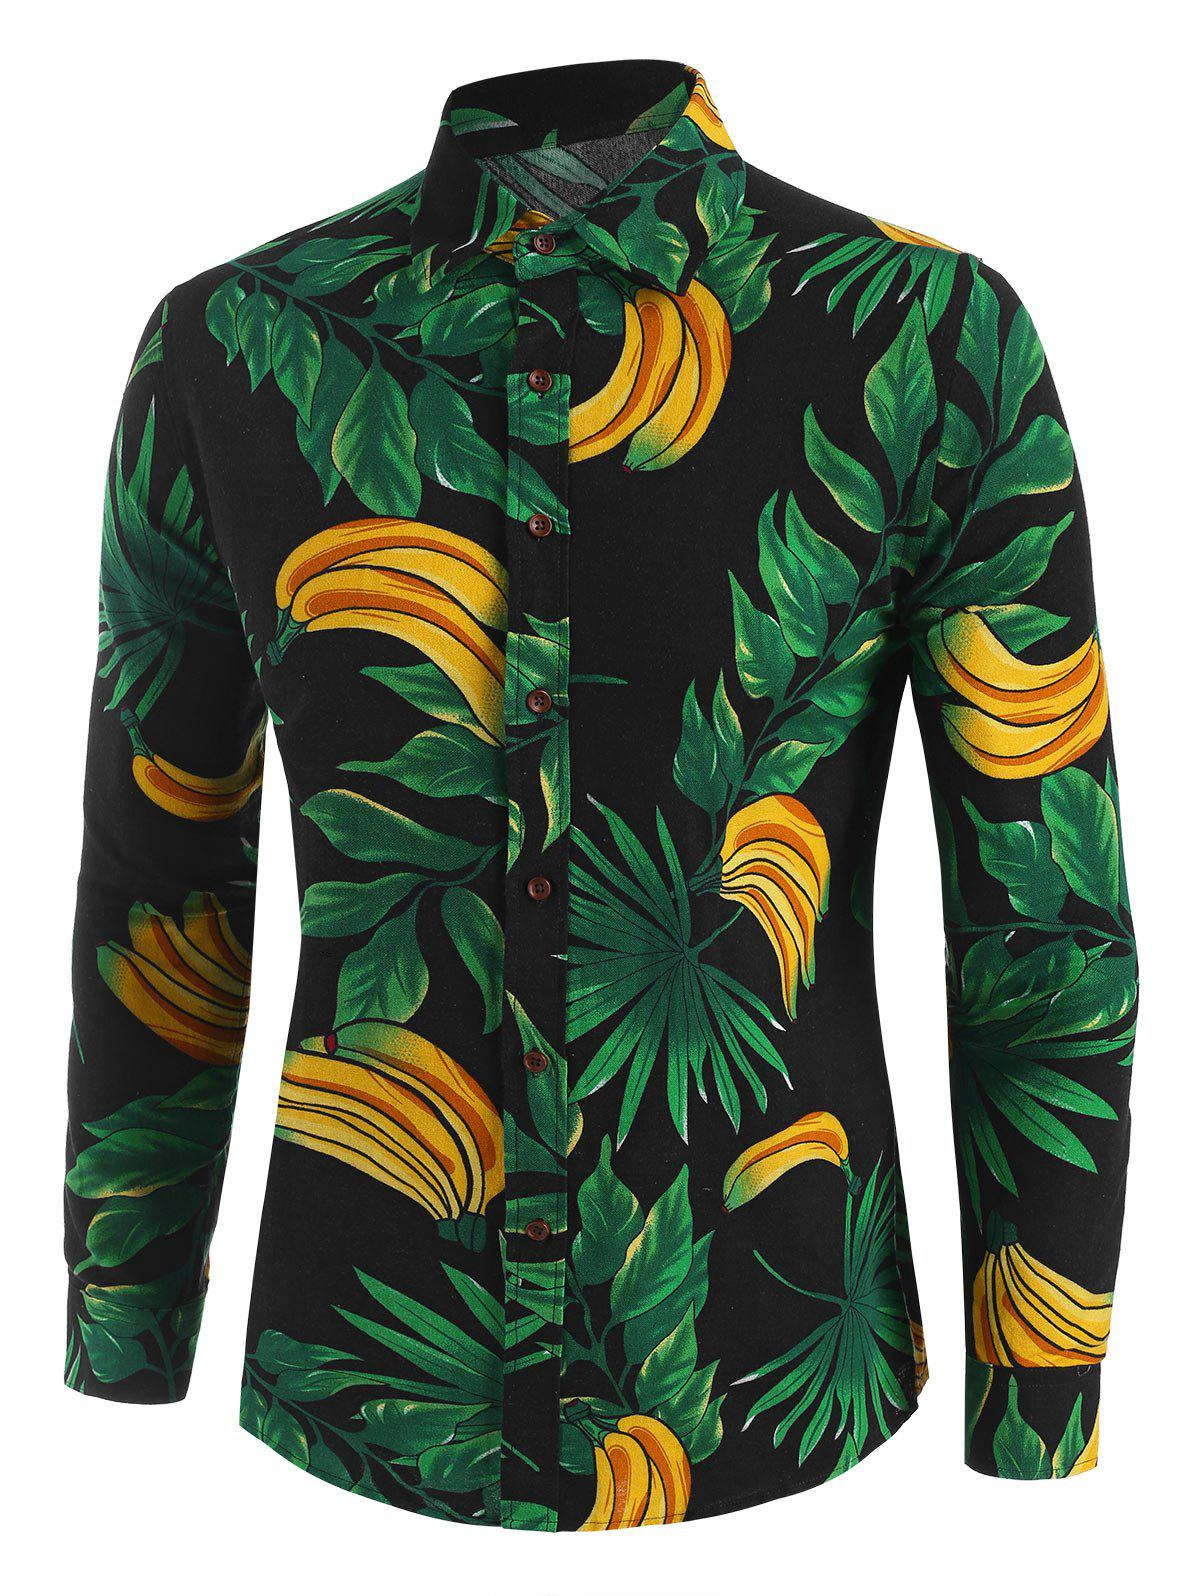 Discount Leaf Banana Print Button Up Leisure Shirt